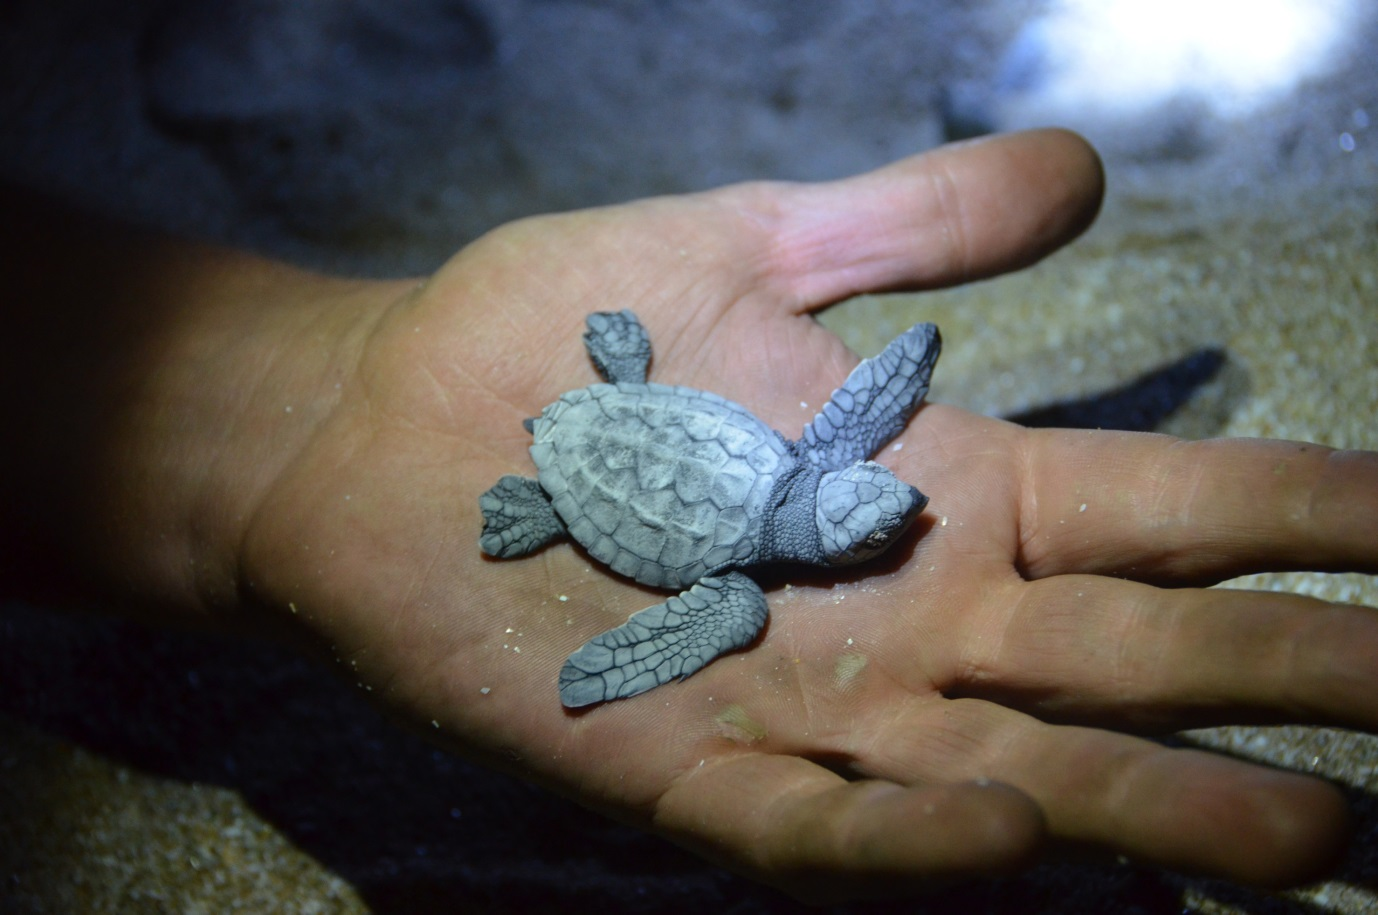 Baby_Turtle_in_palm_of_hand